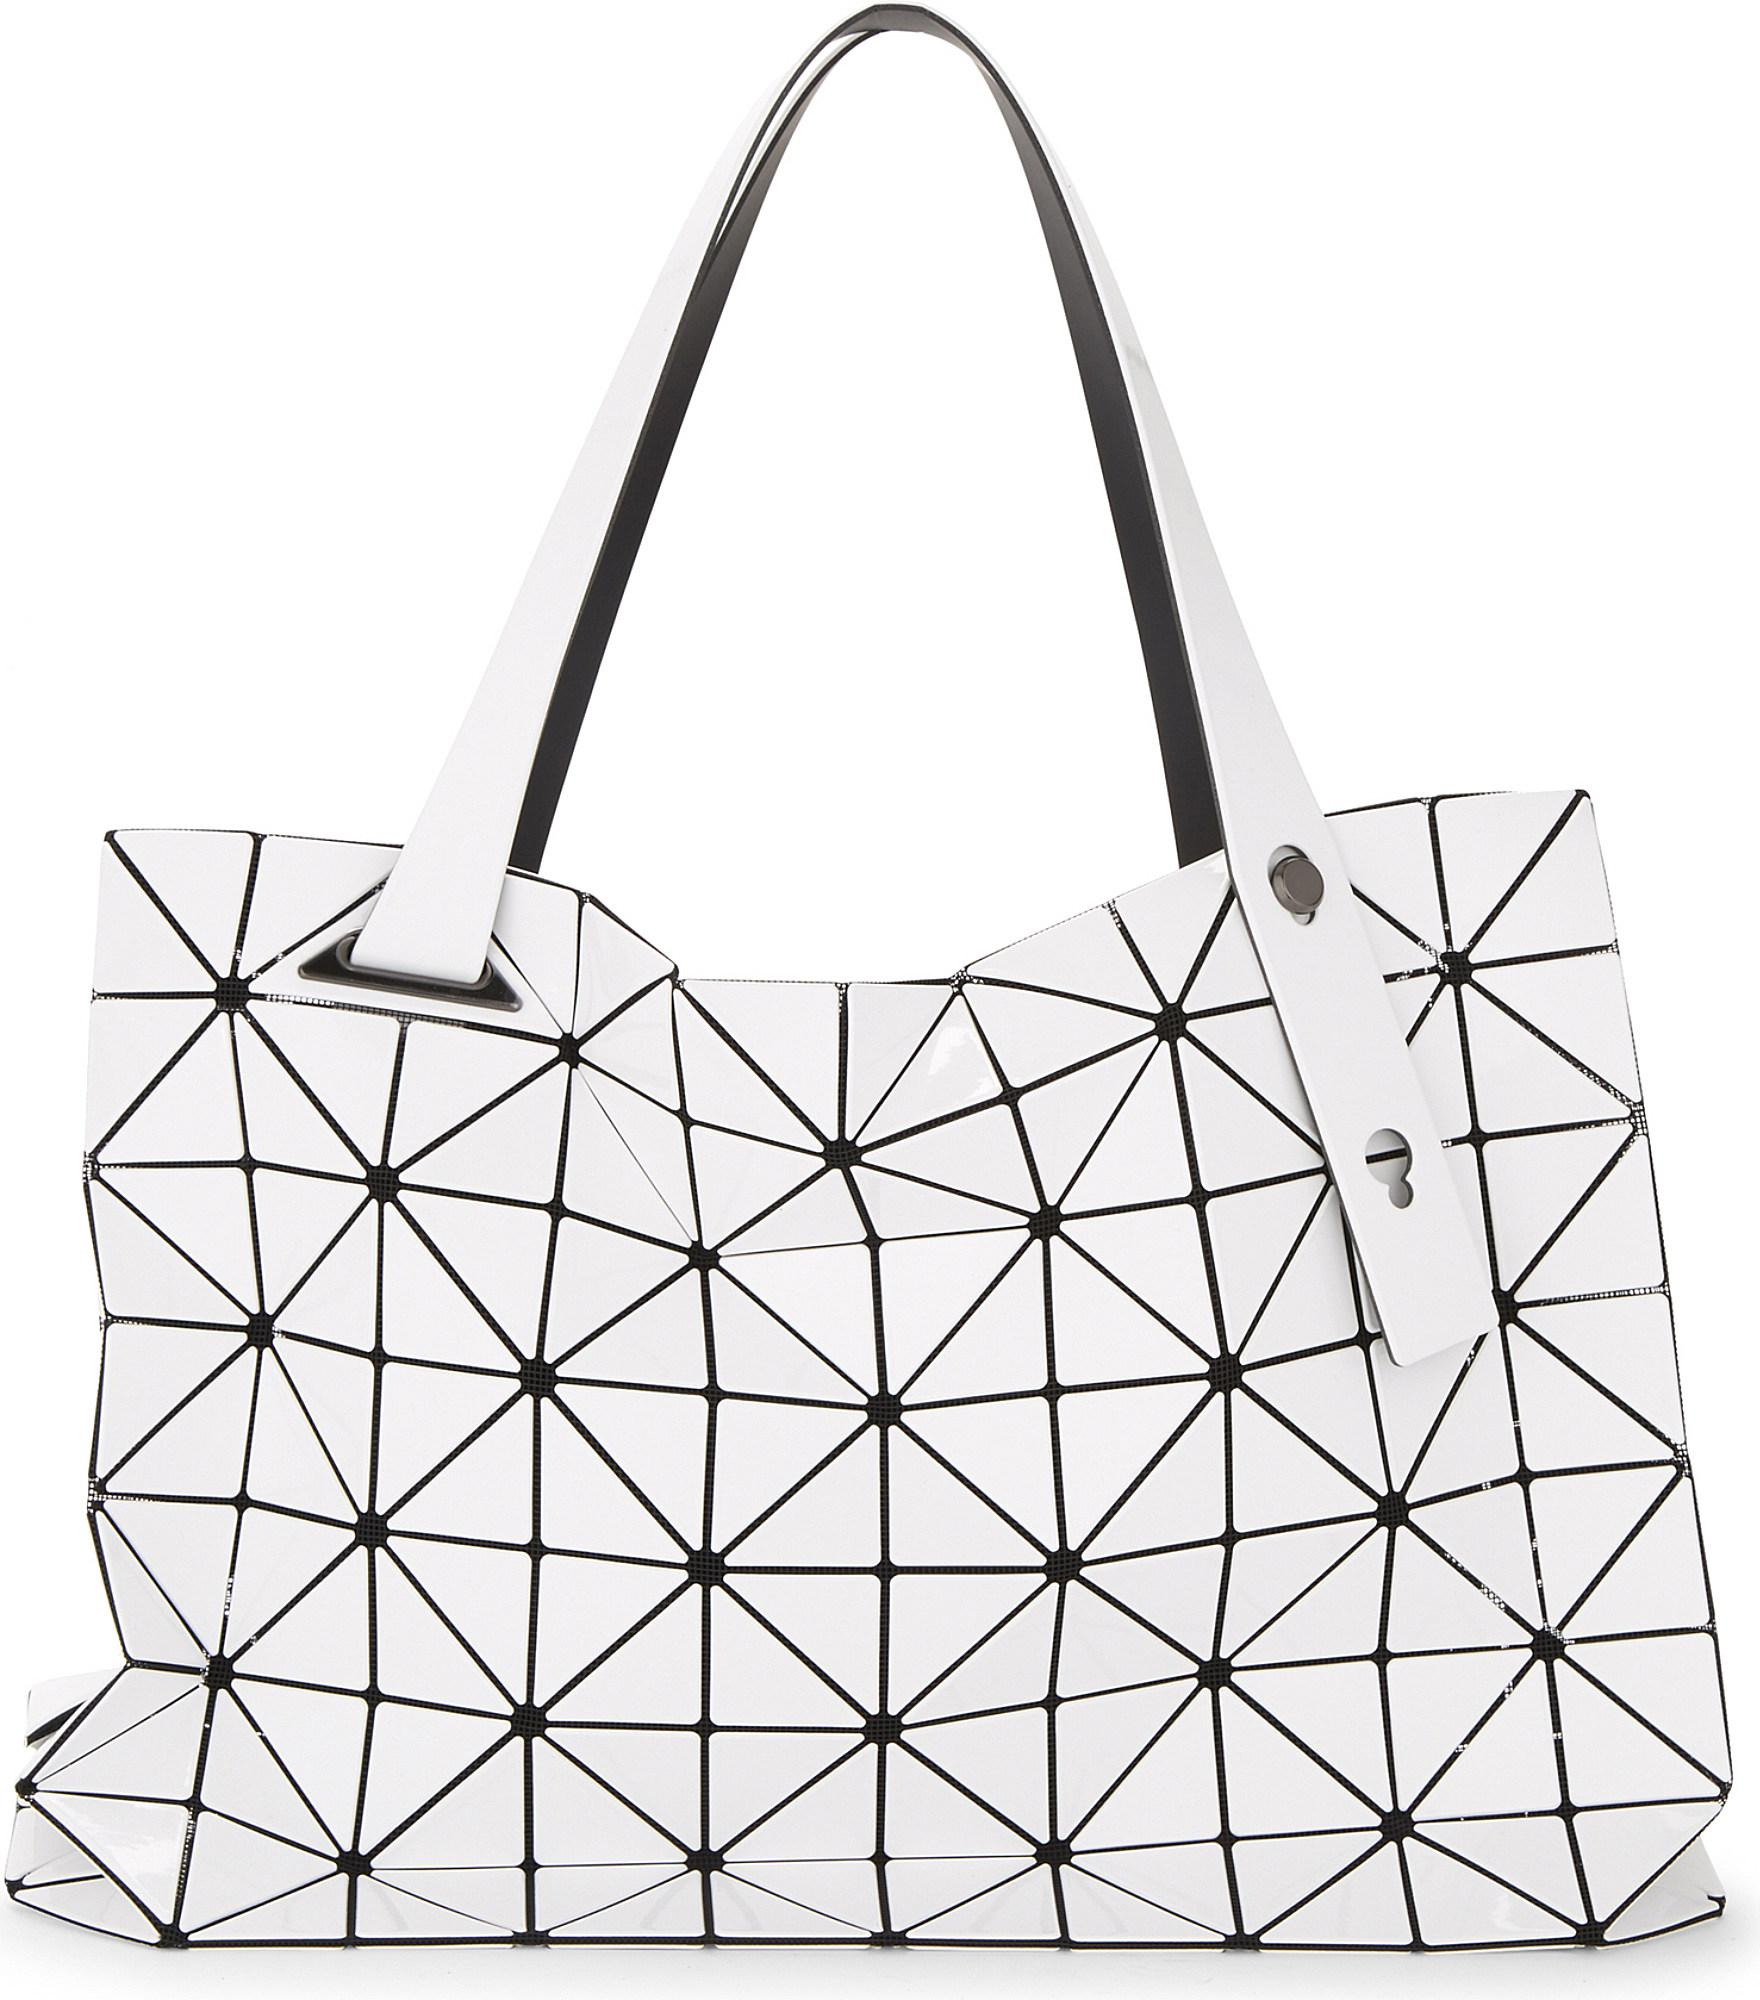 5167c5586ee4 Chanel Purse Drawing at GetDrawings.com | Free for personal use ...